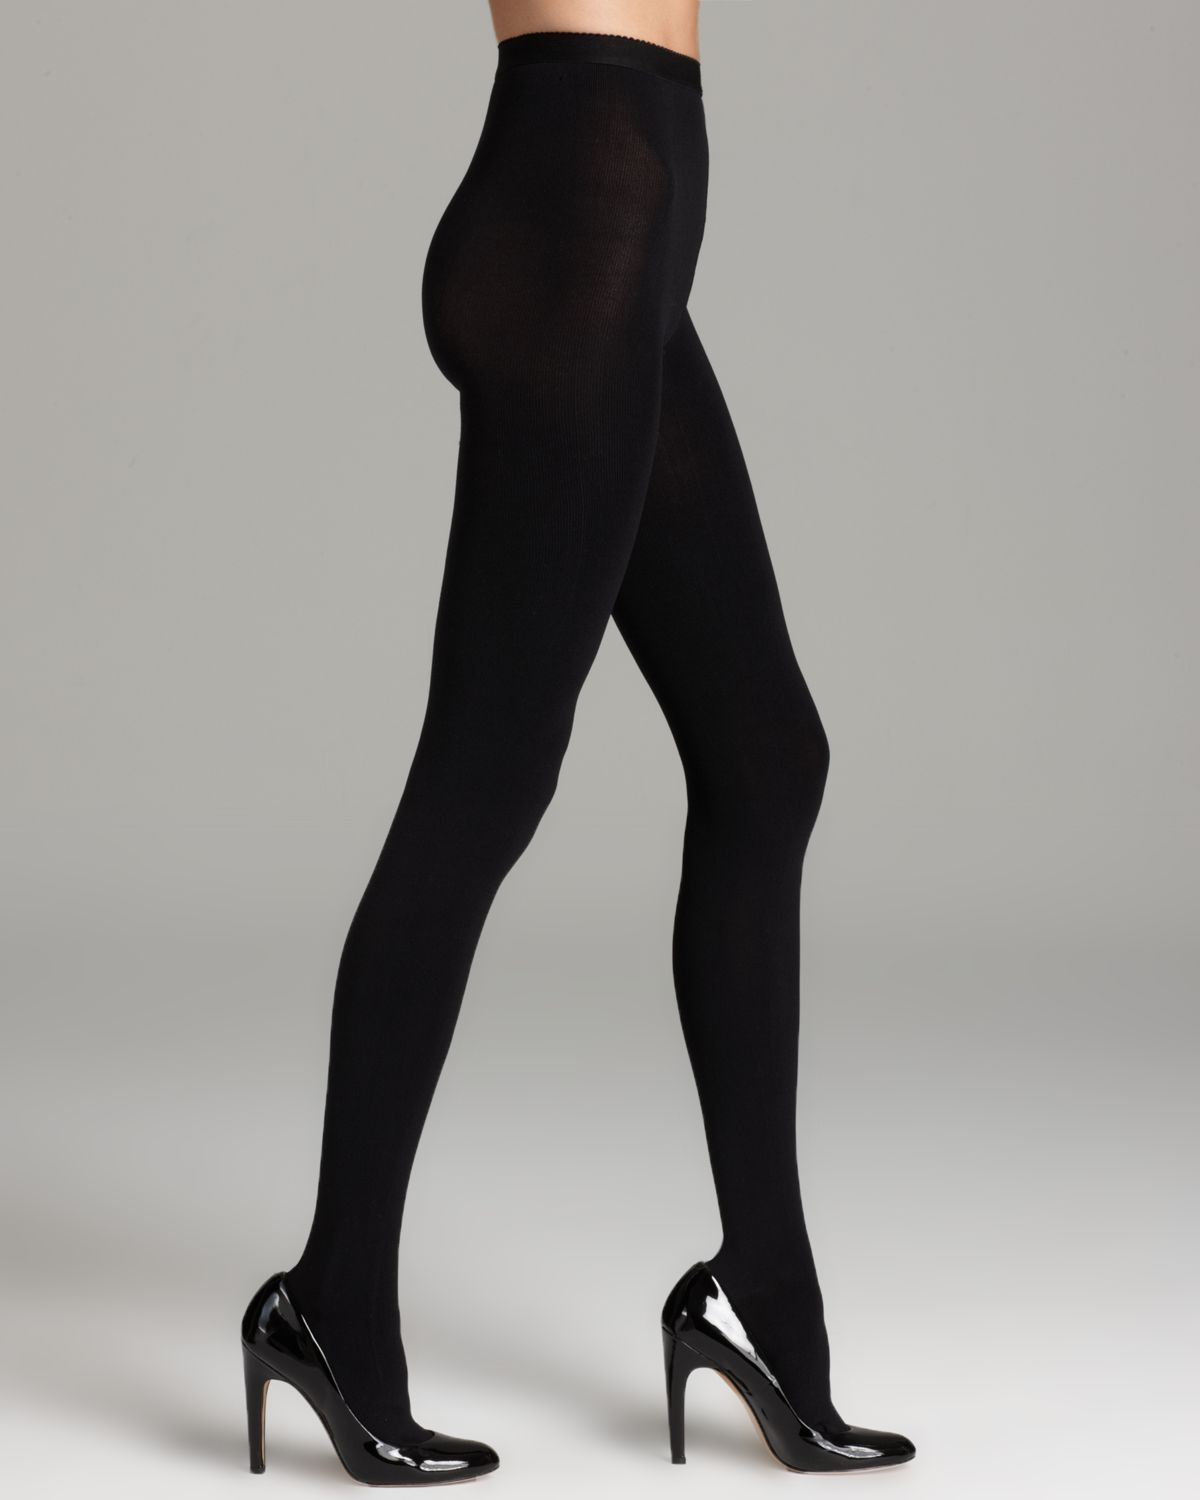 a52ed2c9a1ad1 Gallery. Previously sold at: Bloomingdale's · Women's Black Tights